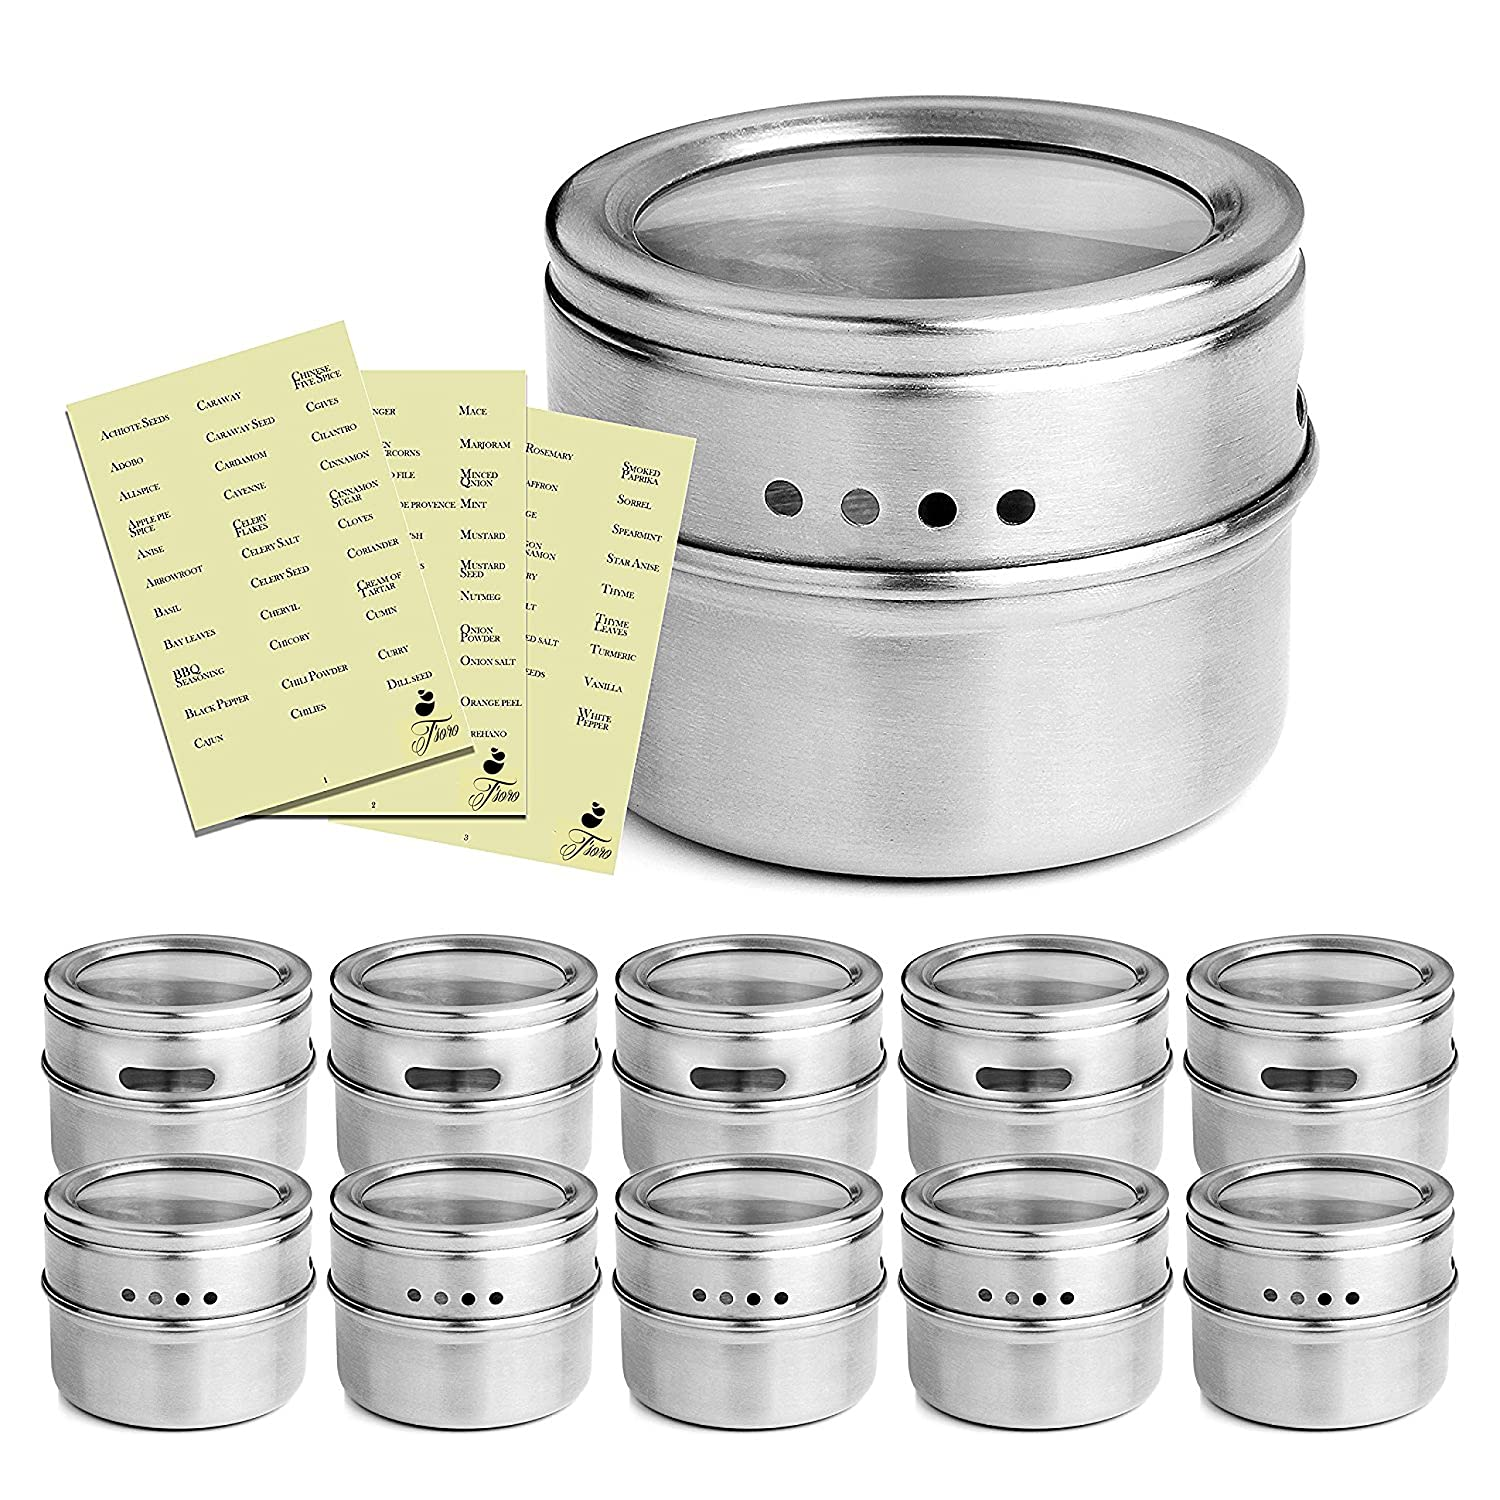 Premium Quality Magnetic Spice Tins With Open And Sprinkle Option; 12 Pack 304 Stainless Steel Multipurpose Jar Organizers; Strong Magnet For Securing To Refrigerator; 117 Free Condiment Labels by T'soro